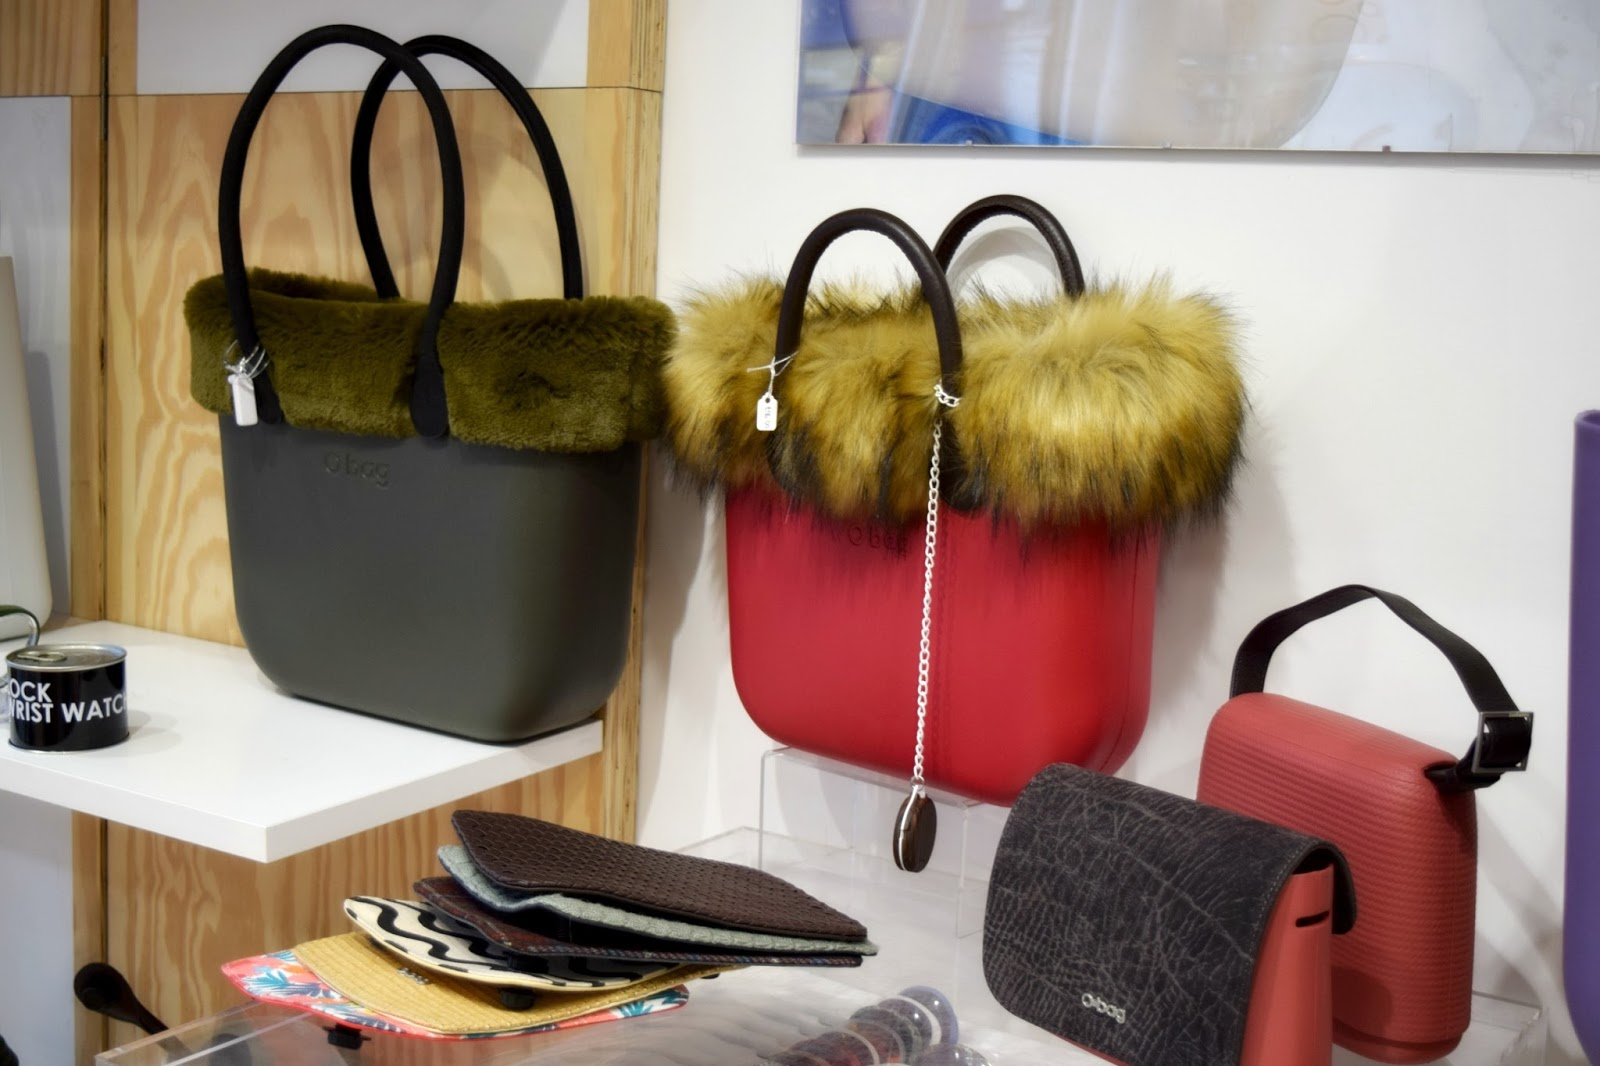 Handbags from the OBag Factory in London